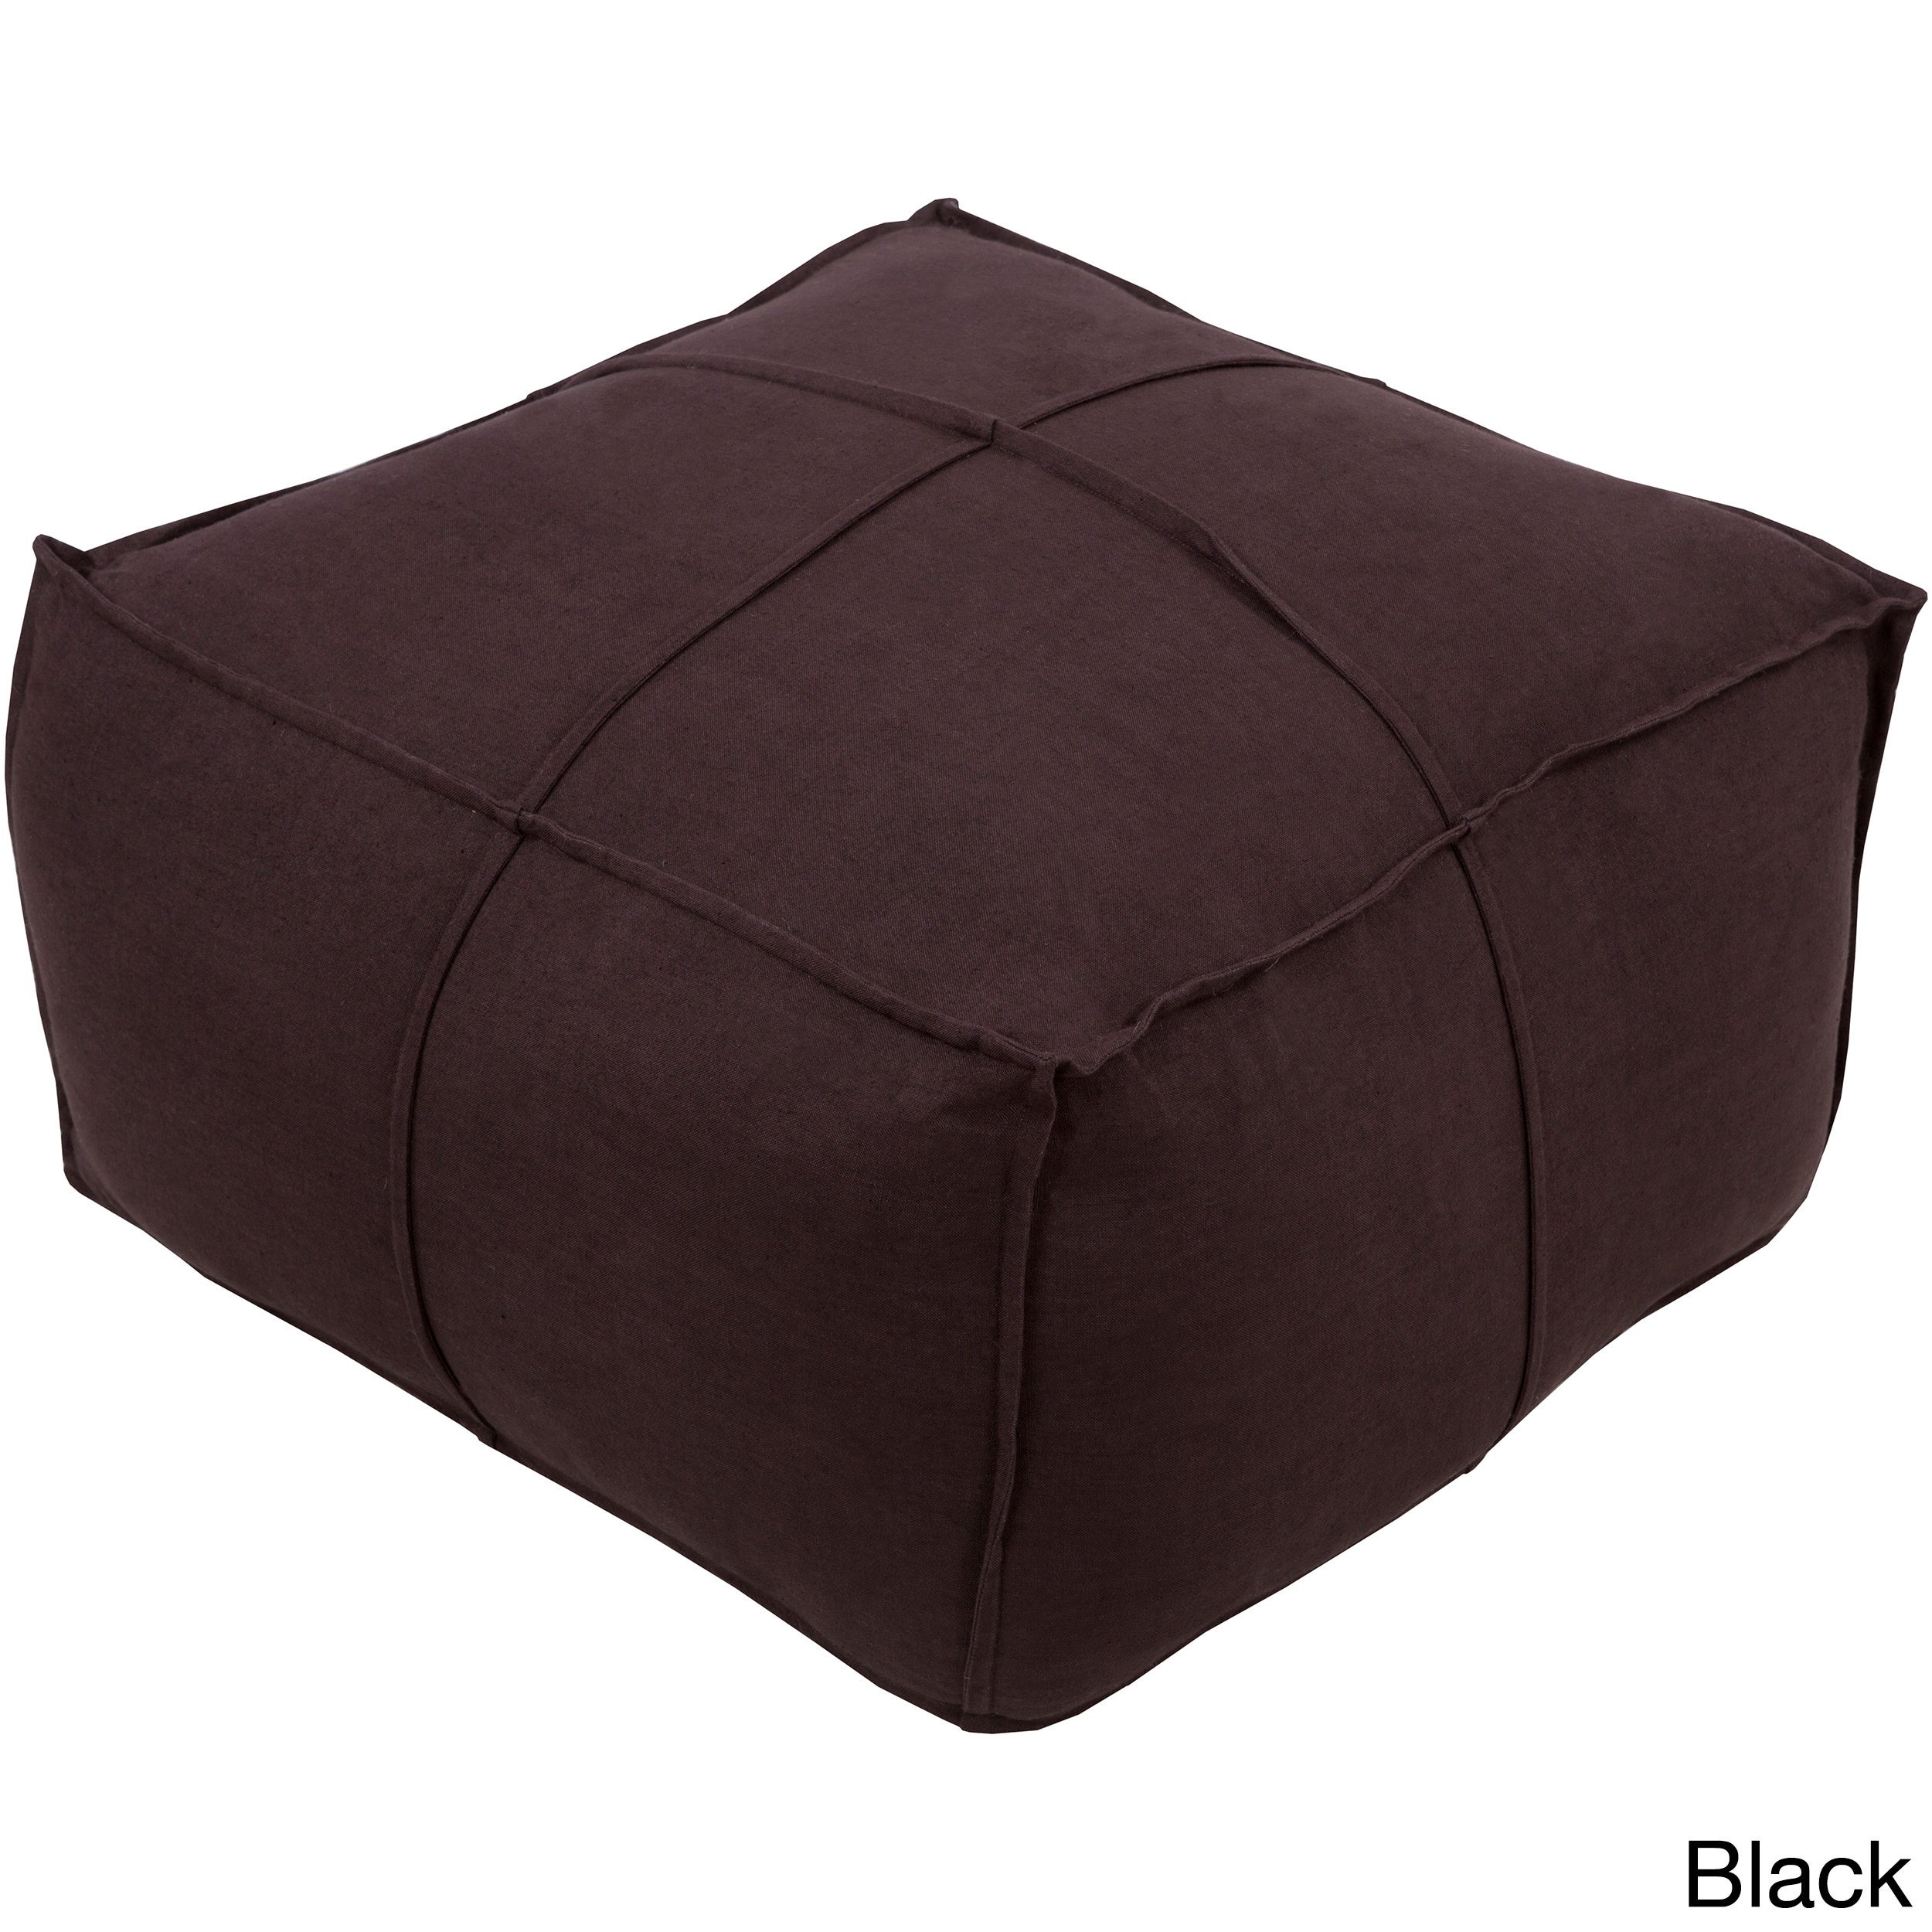 SURYA Solid Cleo Square Linen 24-inch Pouf (Black), Size ...